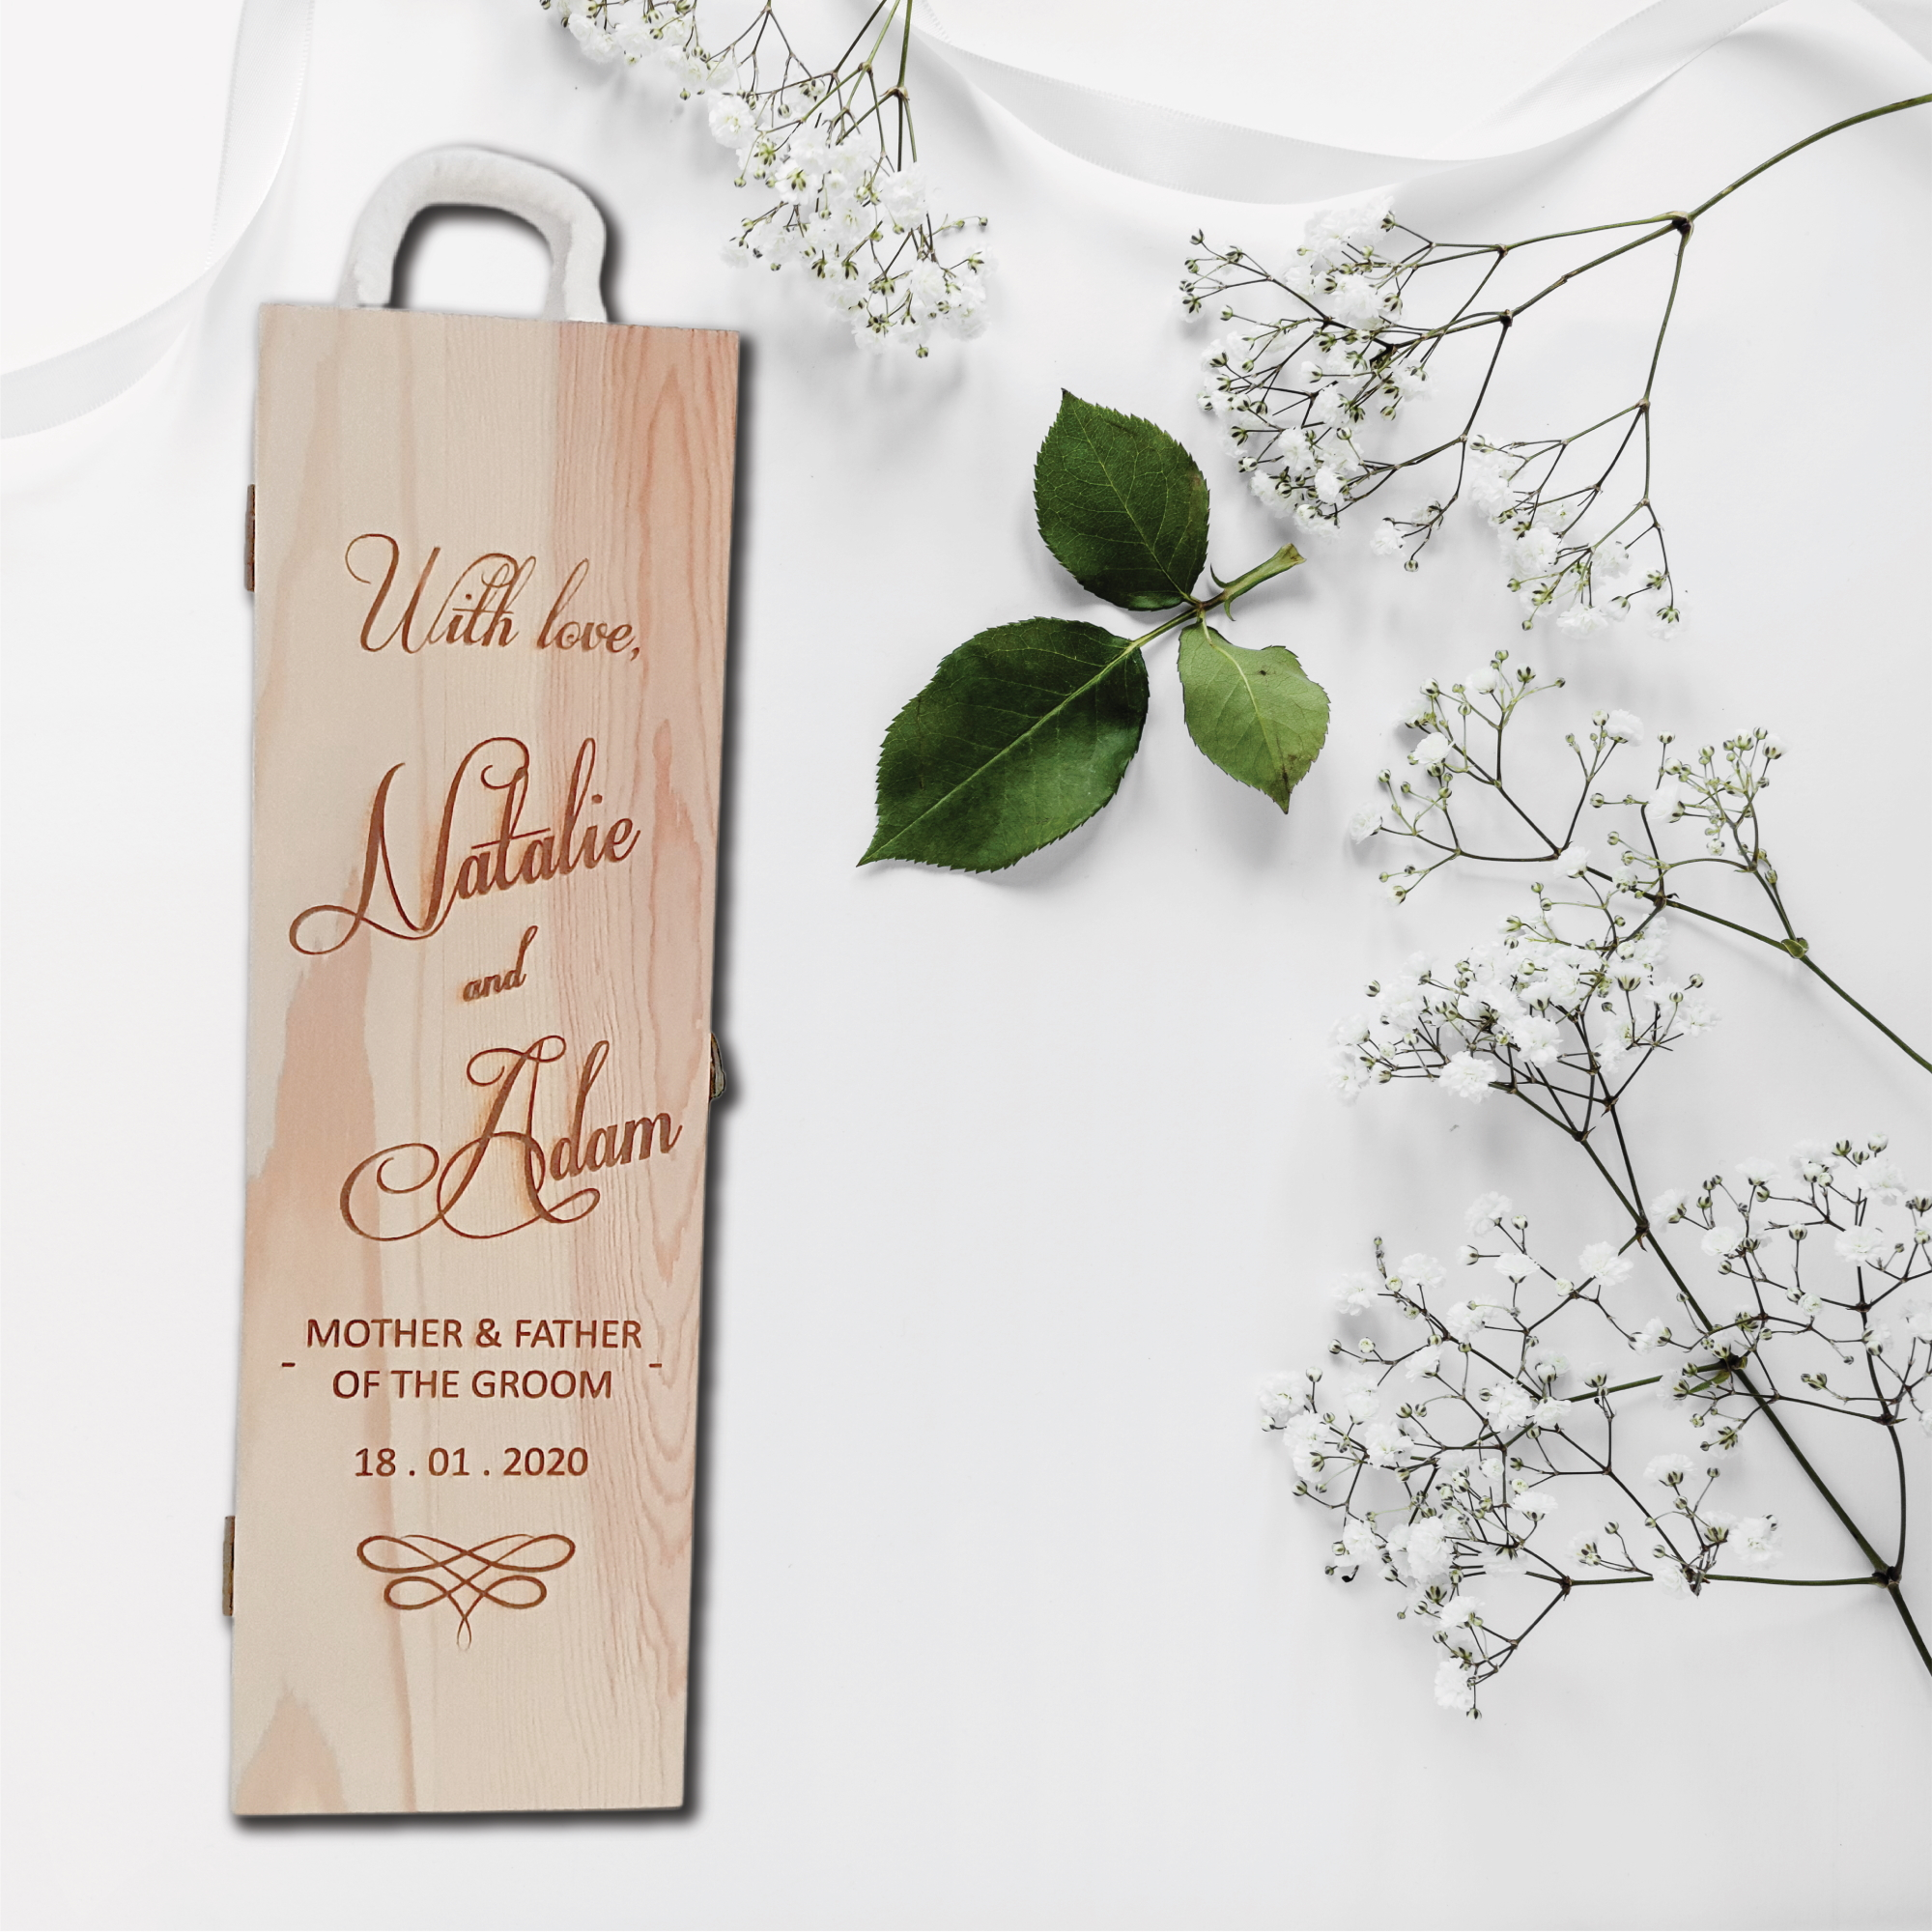 Bridal Party Gift Engraved Wine Box